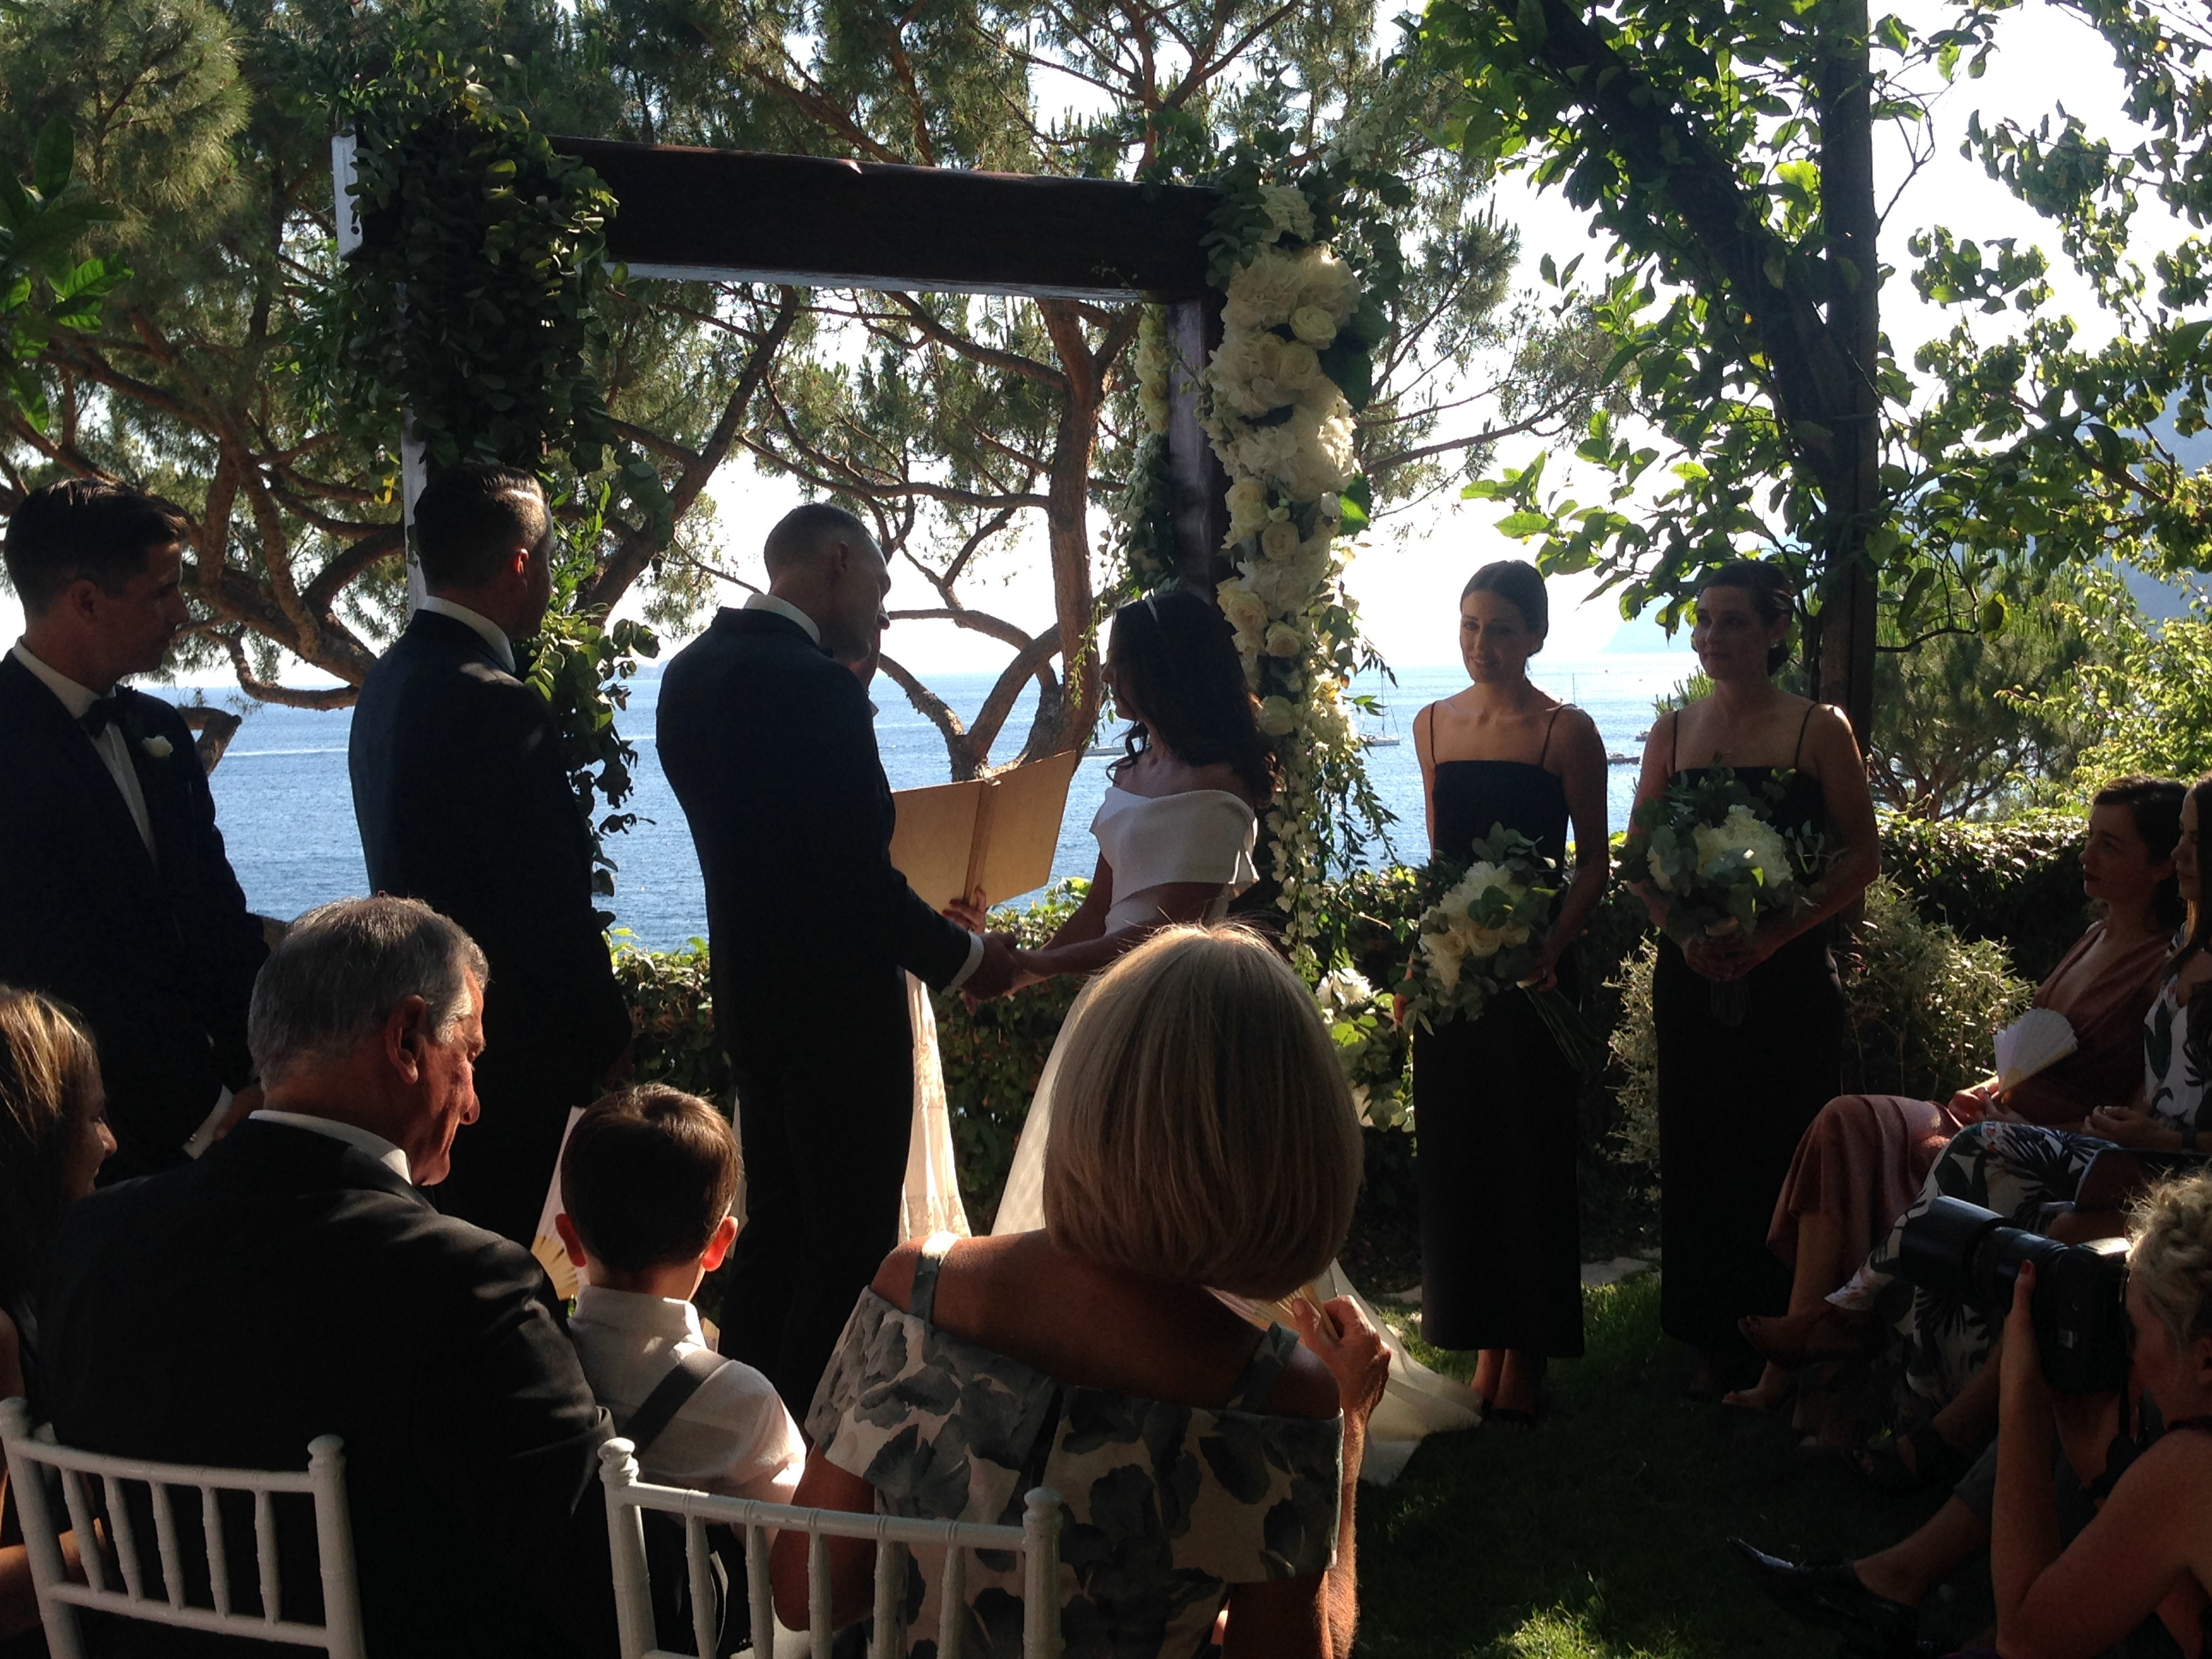 http://www.weddingamalfi.com/wp-content/uploads/Laura-and-Jarrod-seaside-wedding-ceremony.jpg